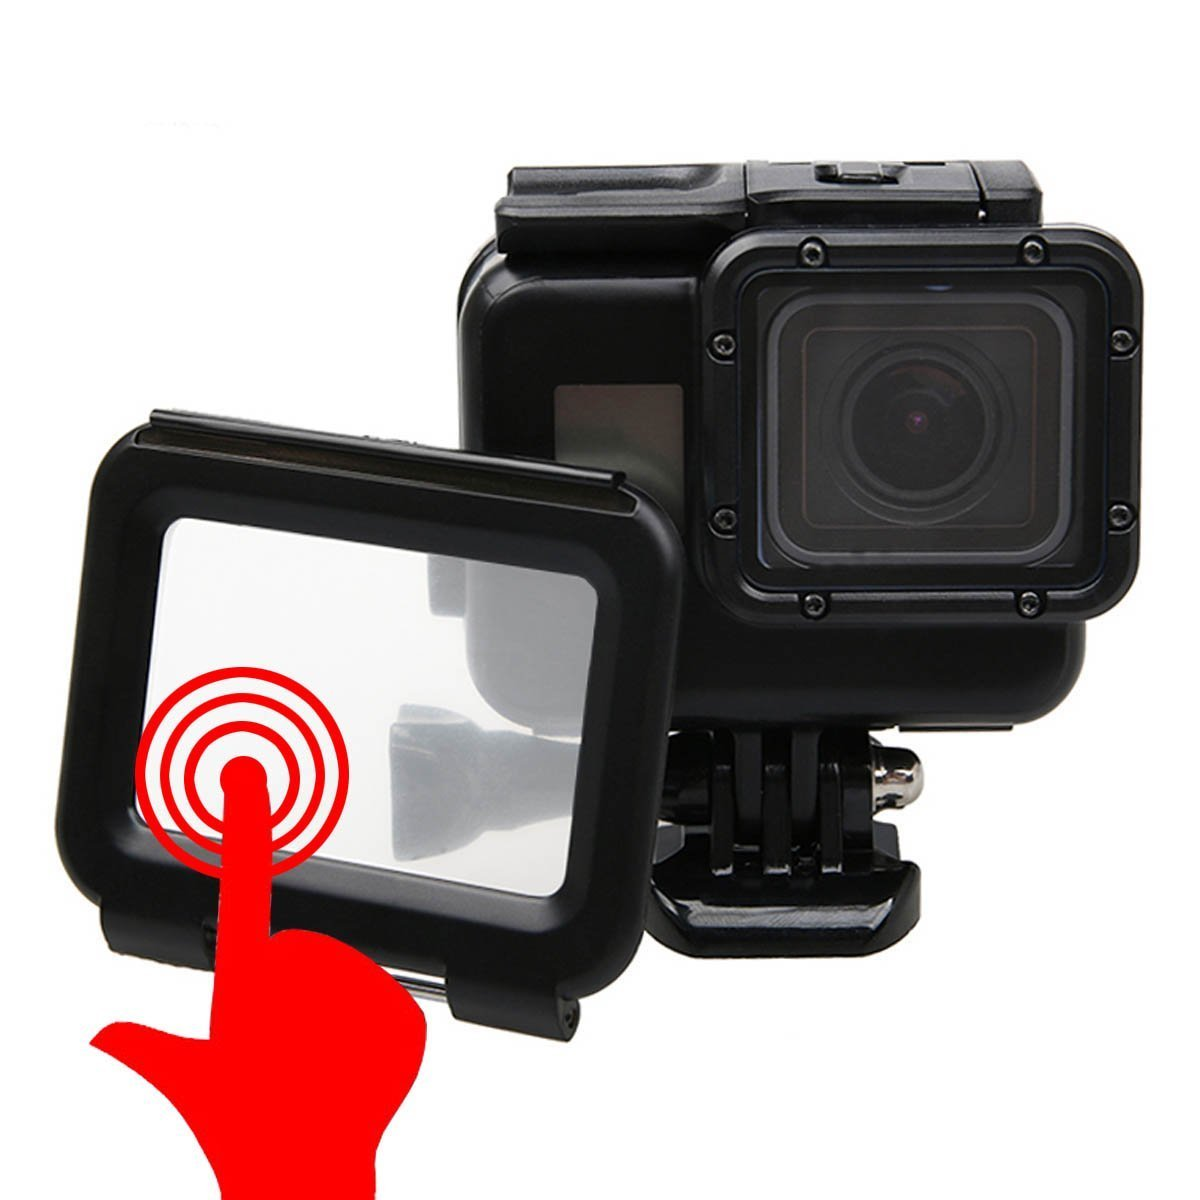 Outtek Waterproof Case for Gopro, Shoot Portable 40M Underwater Waterproof Protective Housing Case Cover with Bracket for GoPro Hero 5 – Black